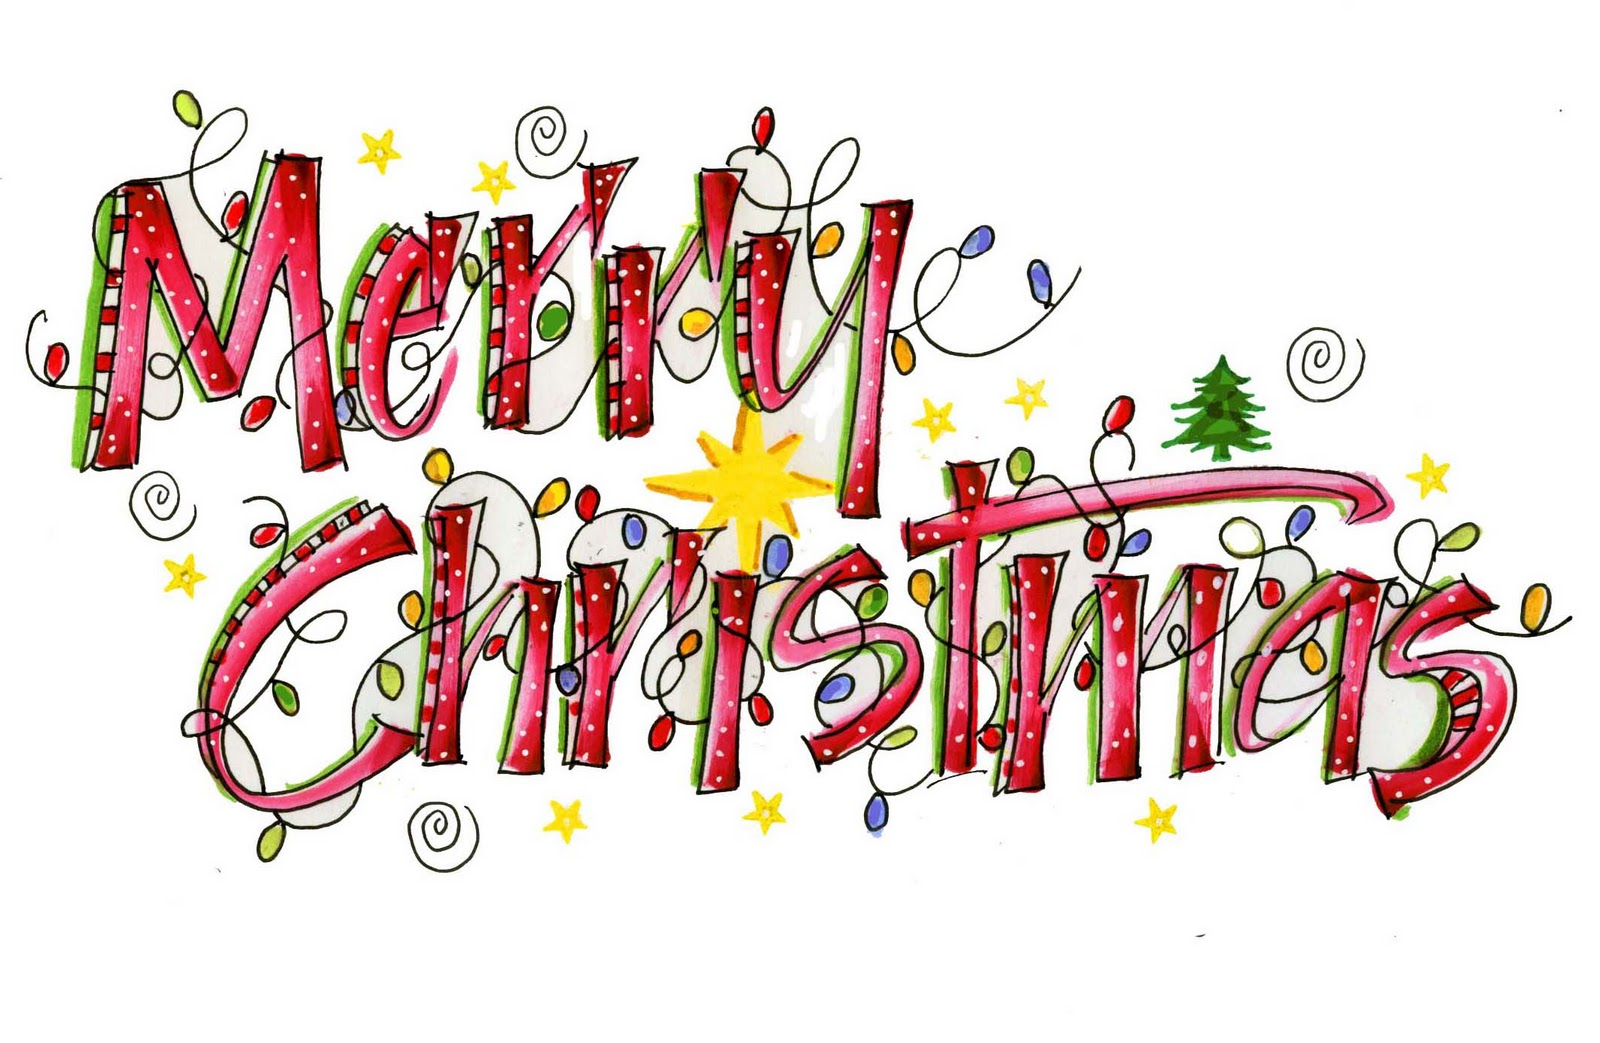 This Merry Christmas Images Clip Art Is Available Only For Personal